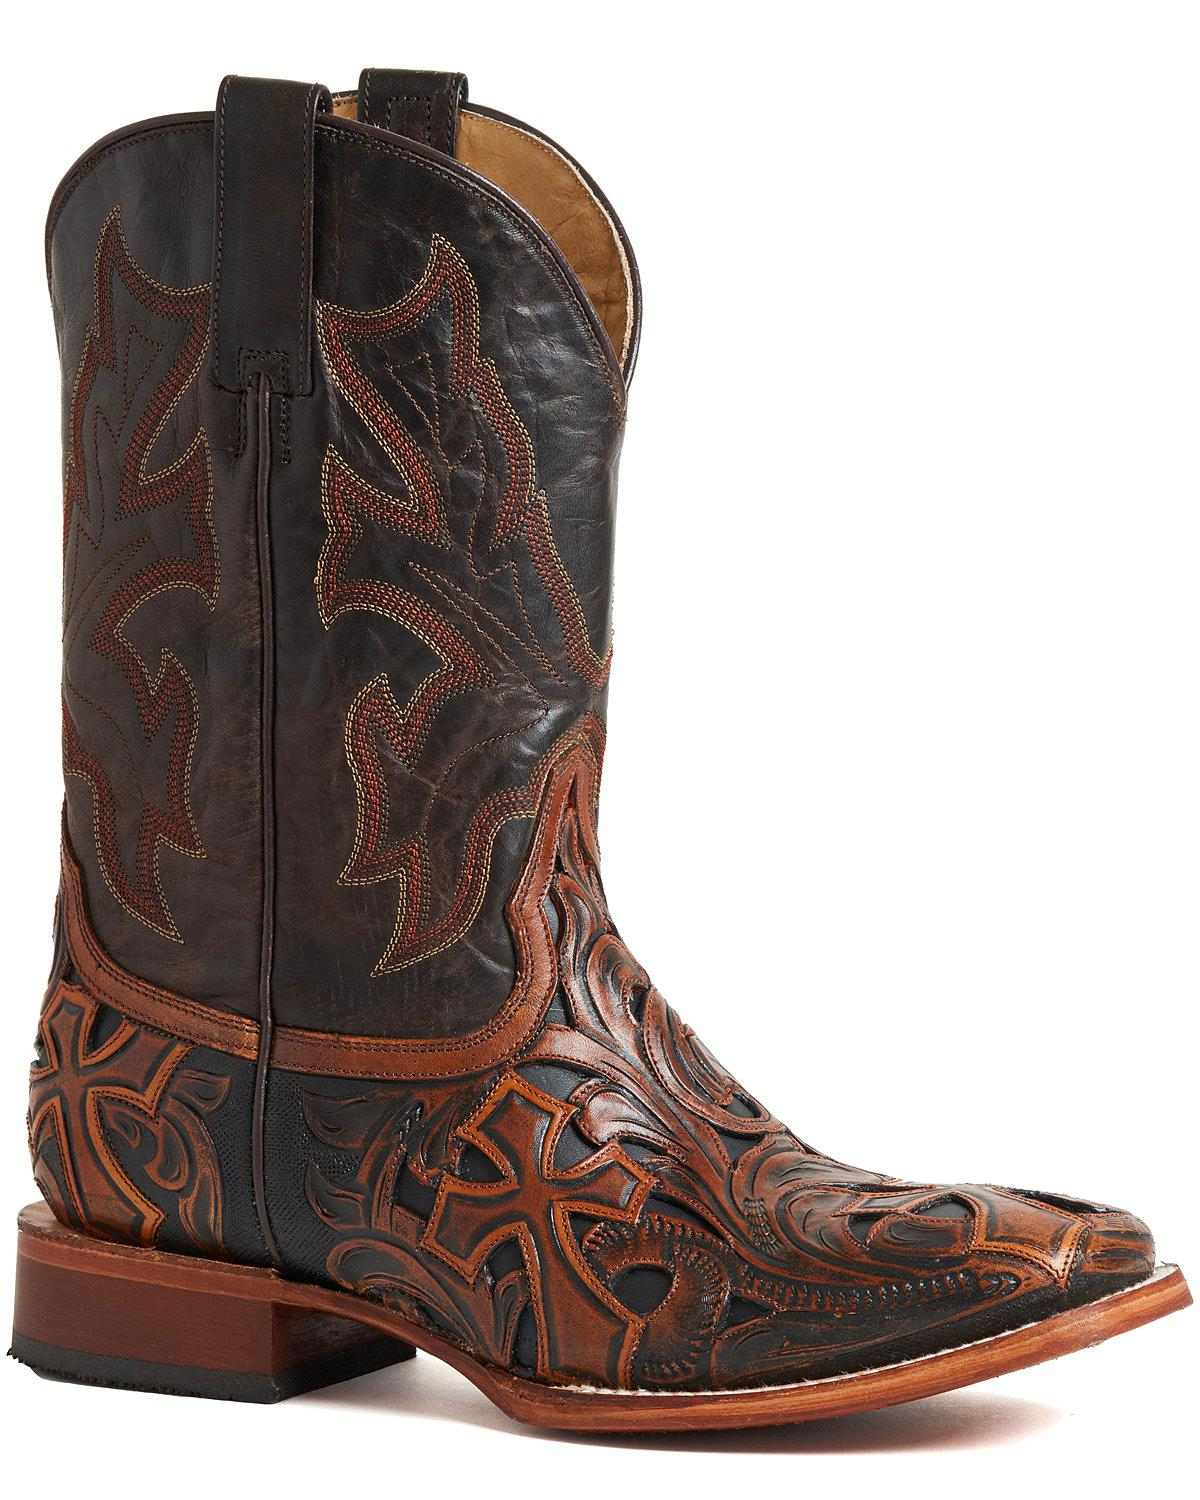 Stetson Men's Handtooled Cross avvio - Square Toe  - 12-020-8861-1640 BR